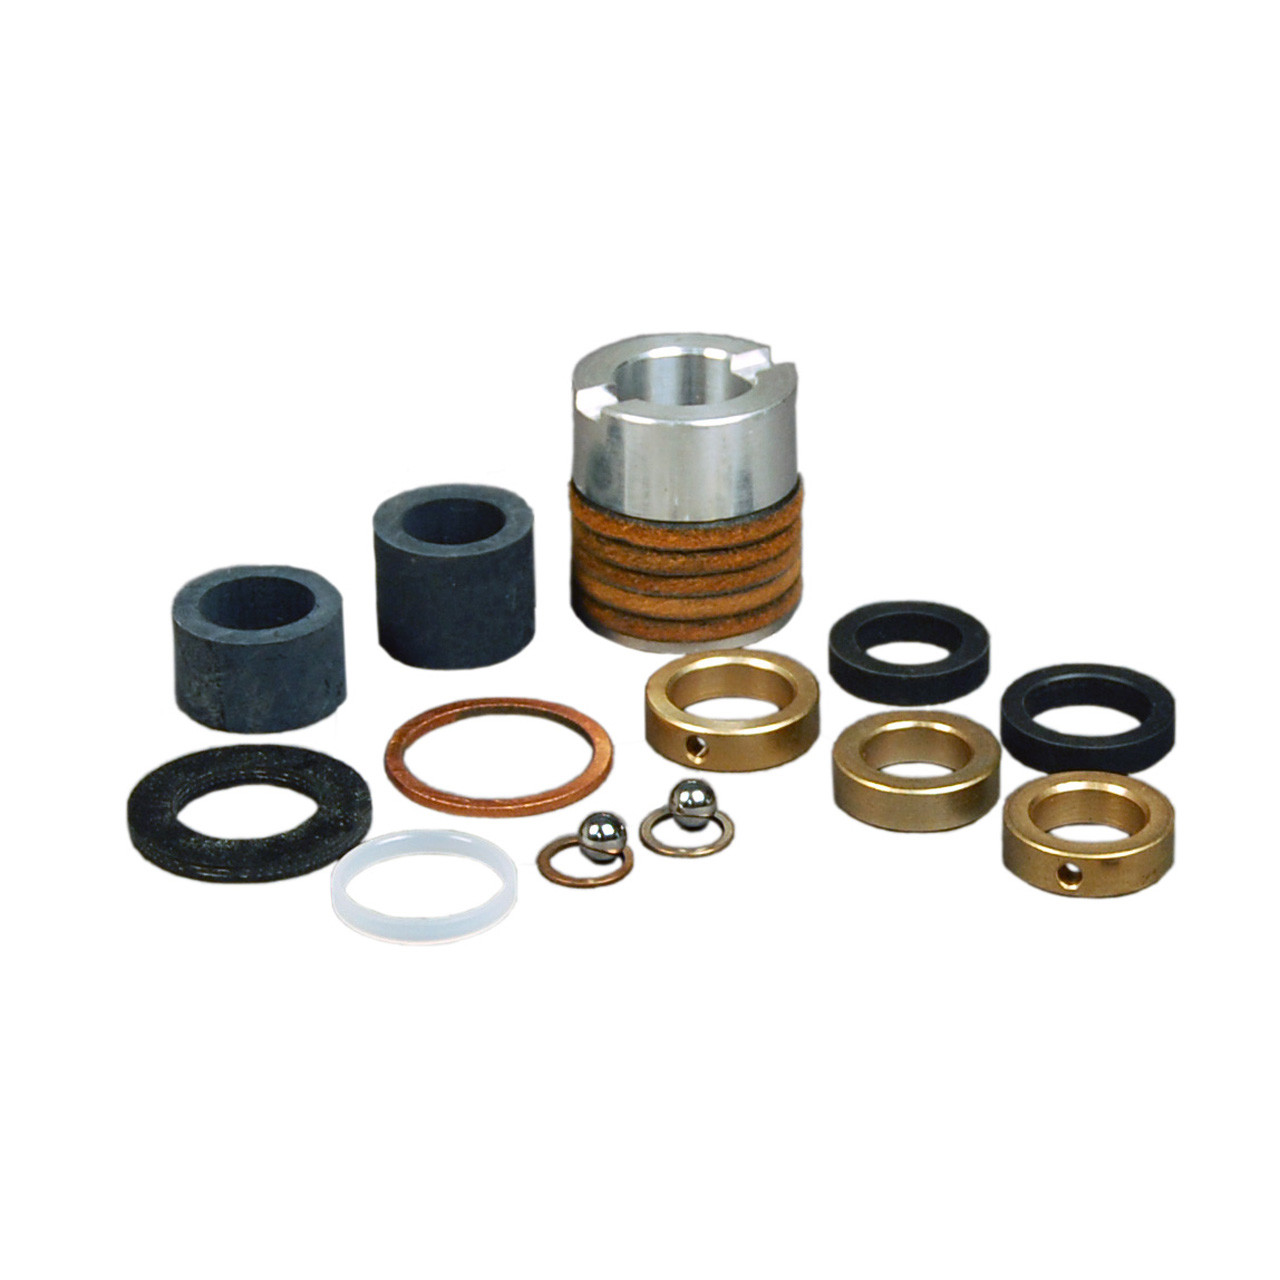 SVI Inc  Fluid Section Repair Kit For Graco 50:1 Fire-Ball Grease Pumps